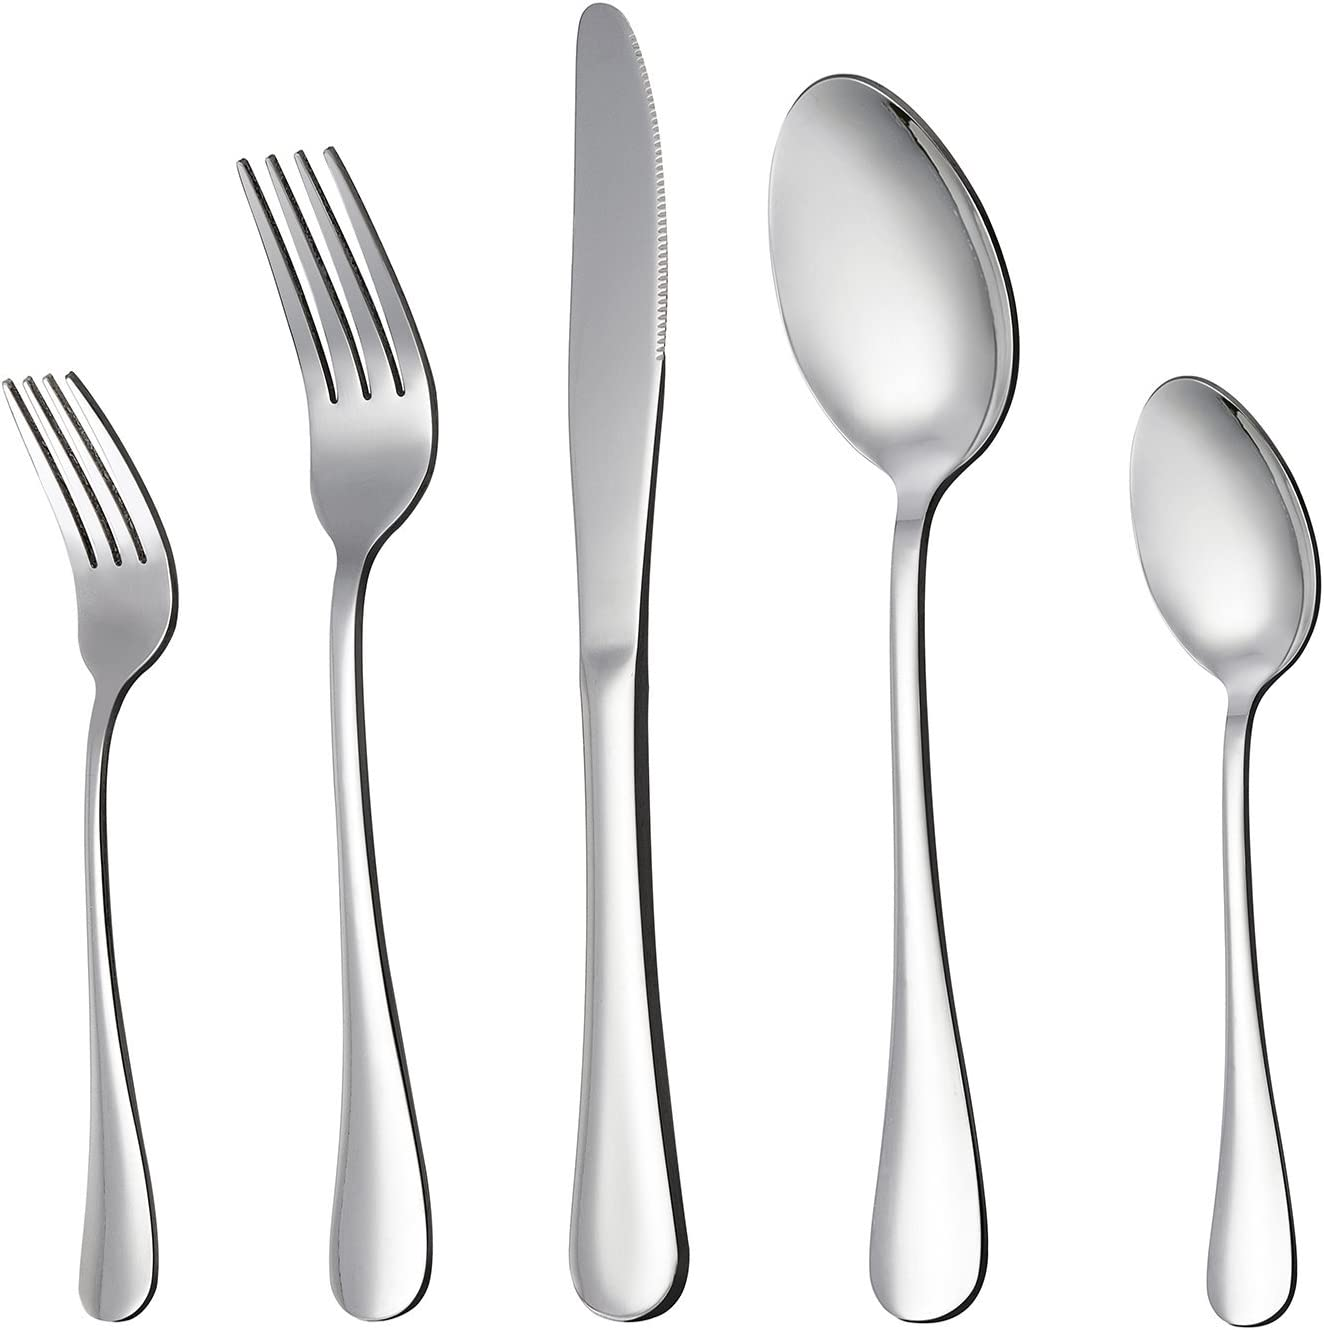 | LIANYU 20-Piece Silverware Flatware Cutlery Set, Stainless Steel Utensils Service for 4, Include Knife/Fork/Spoon, Mirror Polished, Dishwasher Safe: Flatware Sets